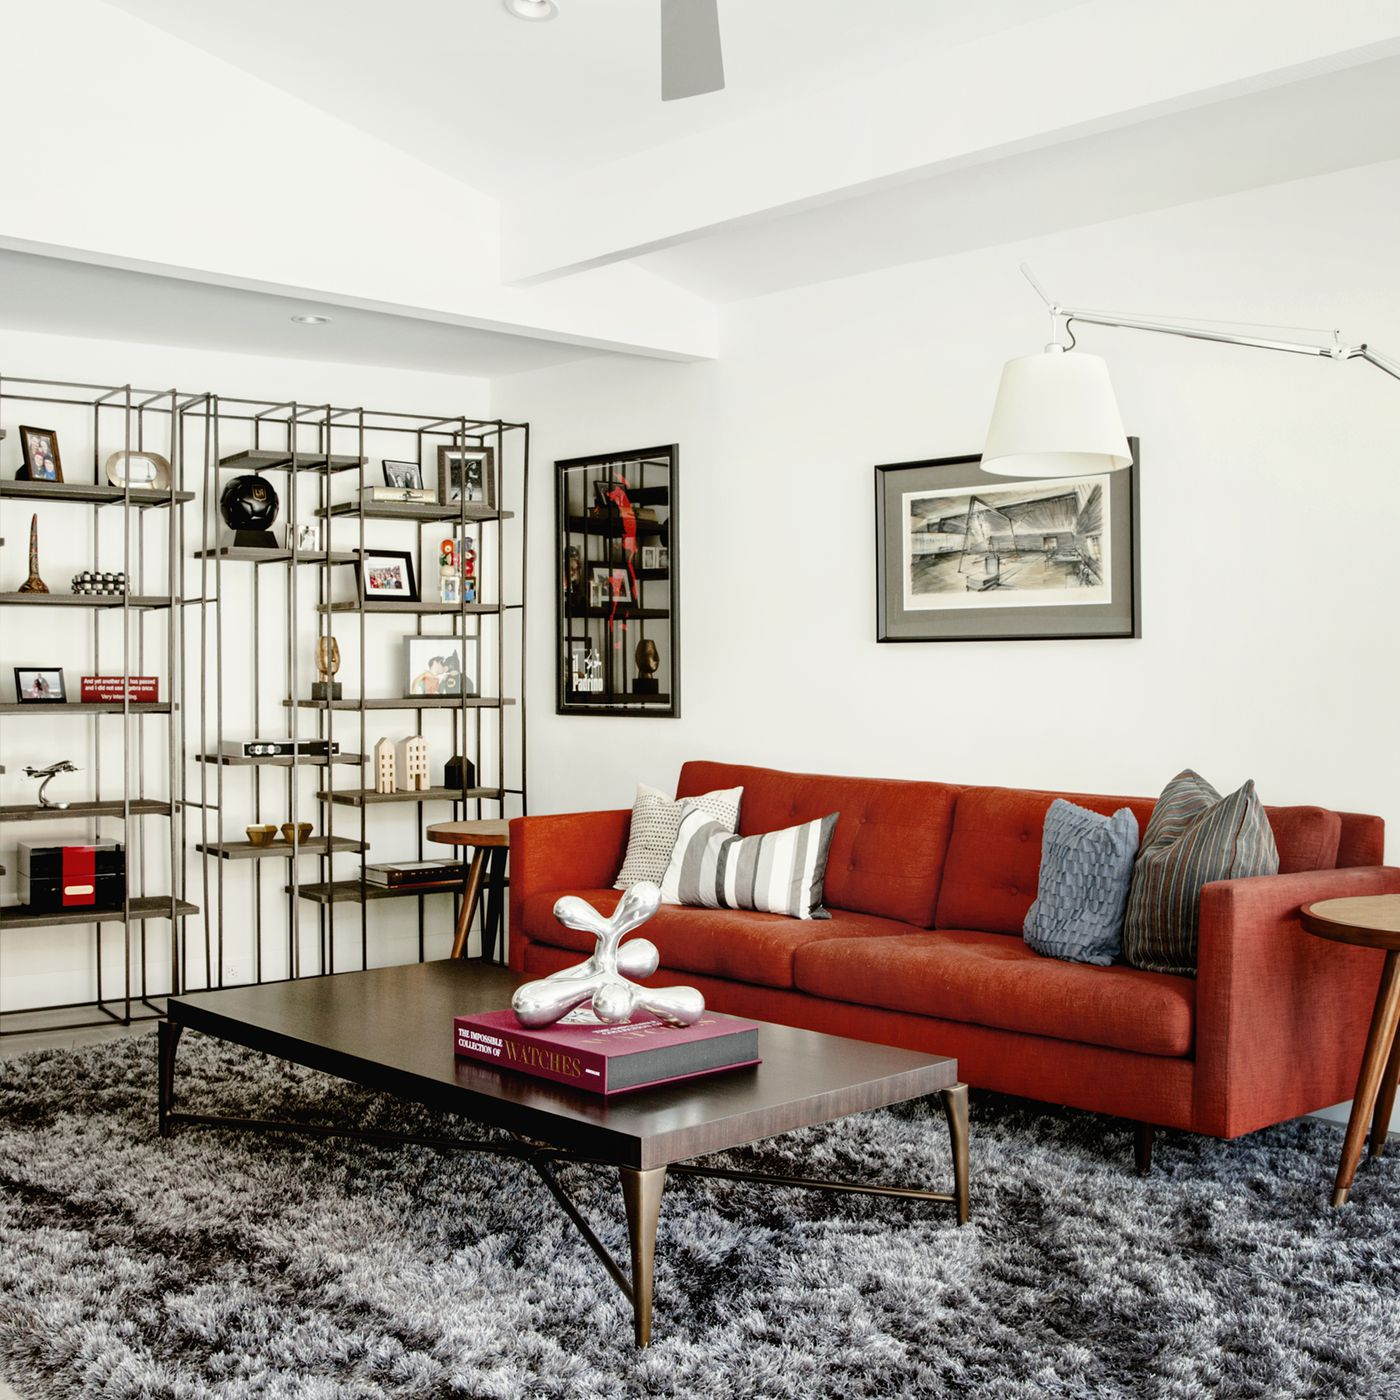 Living room rug ideas and tips: How to choose the right one - Curbed